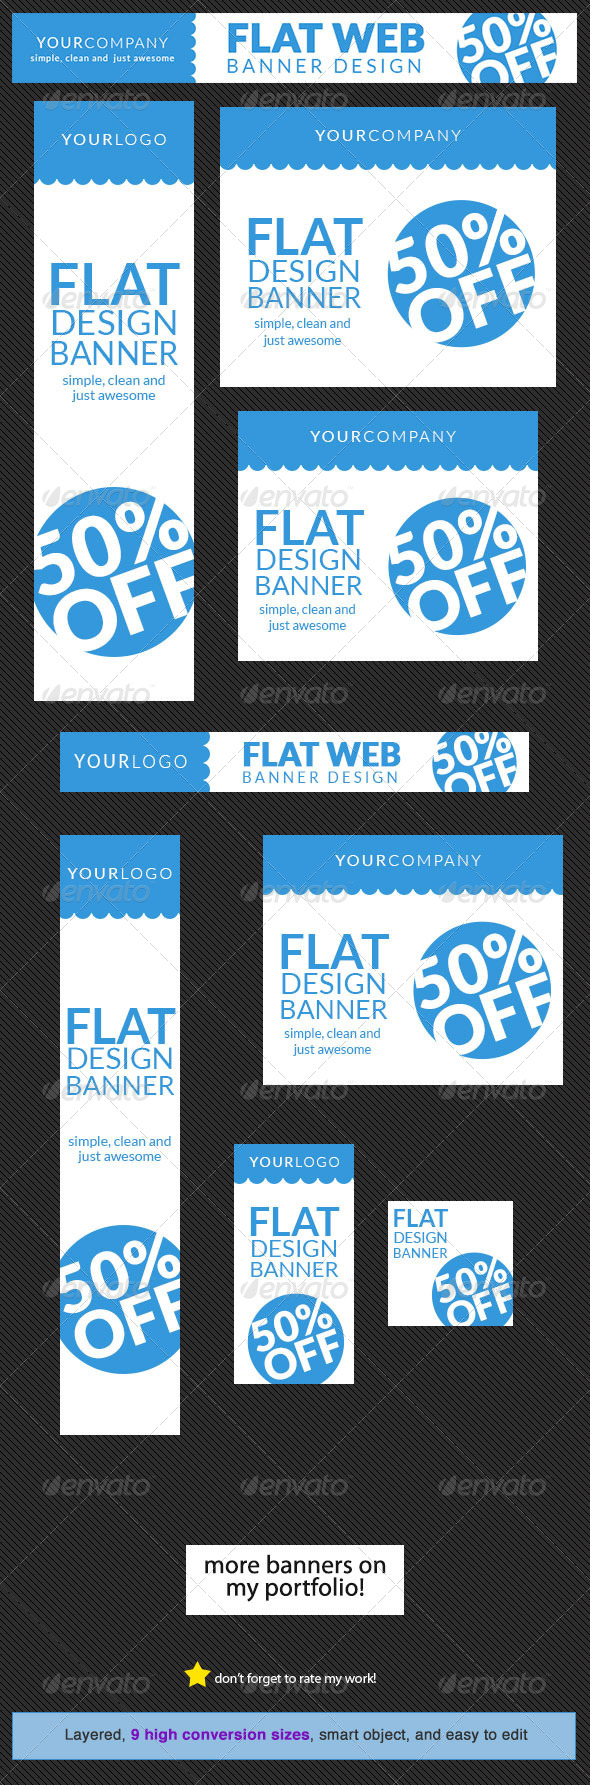 Flat Web Banner Design Template